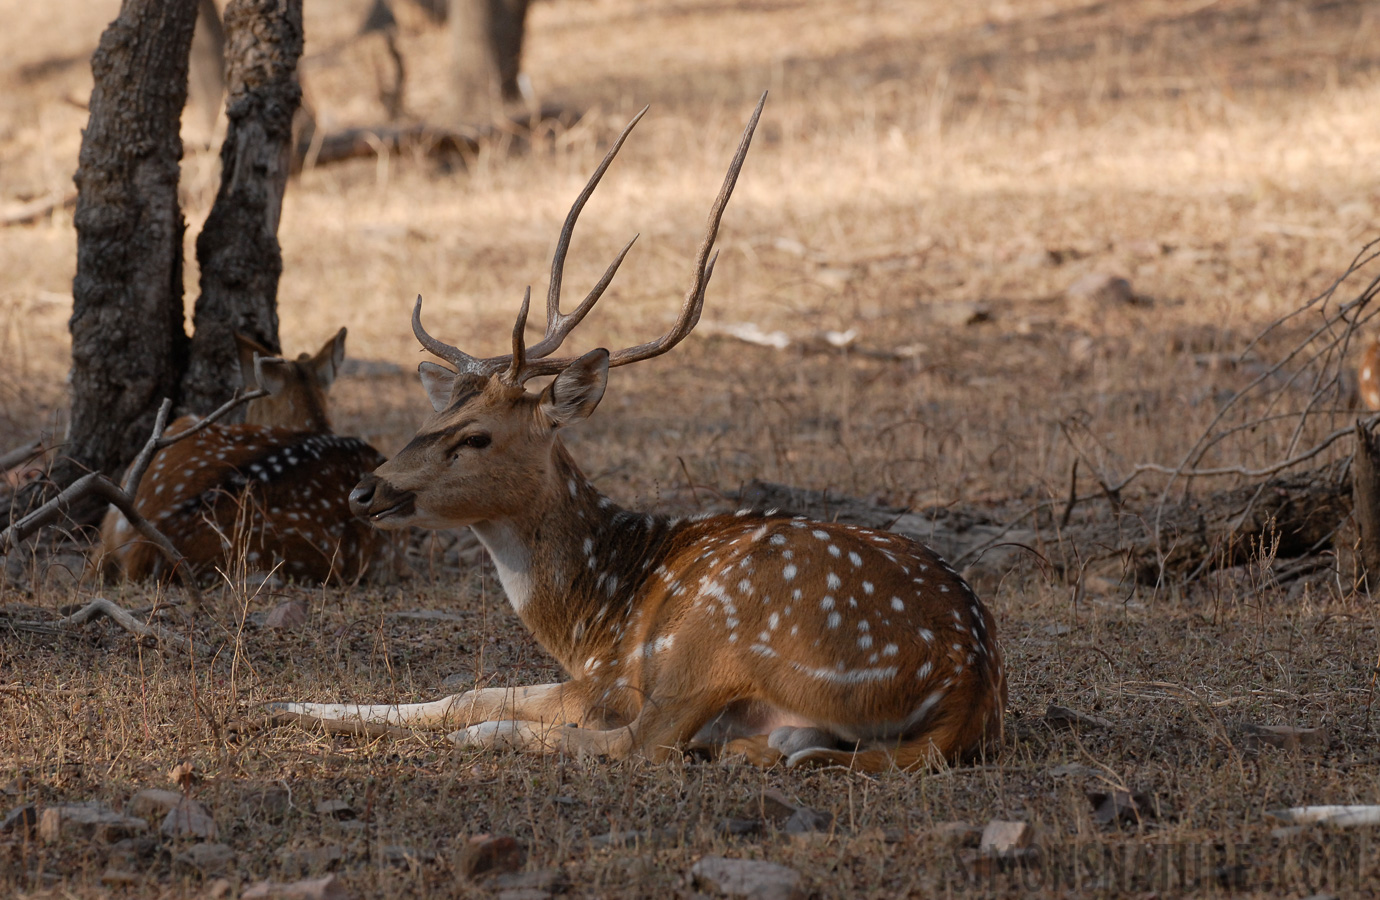 Spotted Deer [Axis axis]